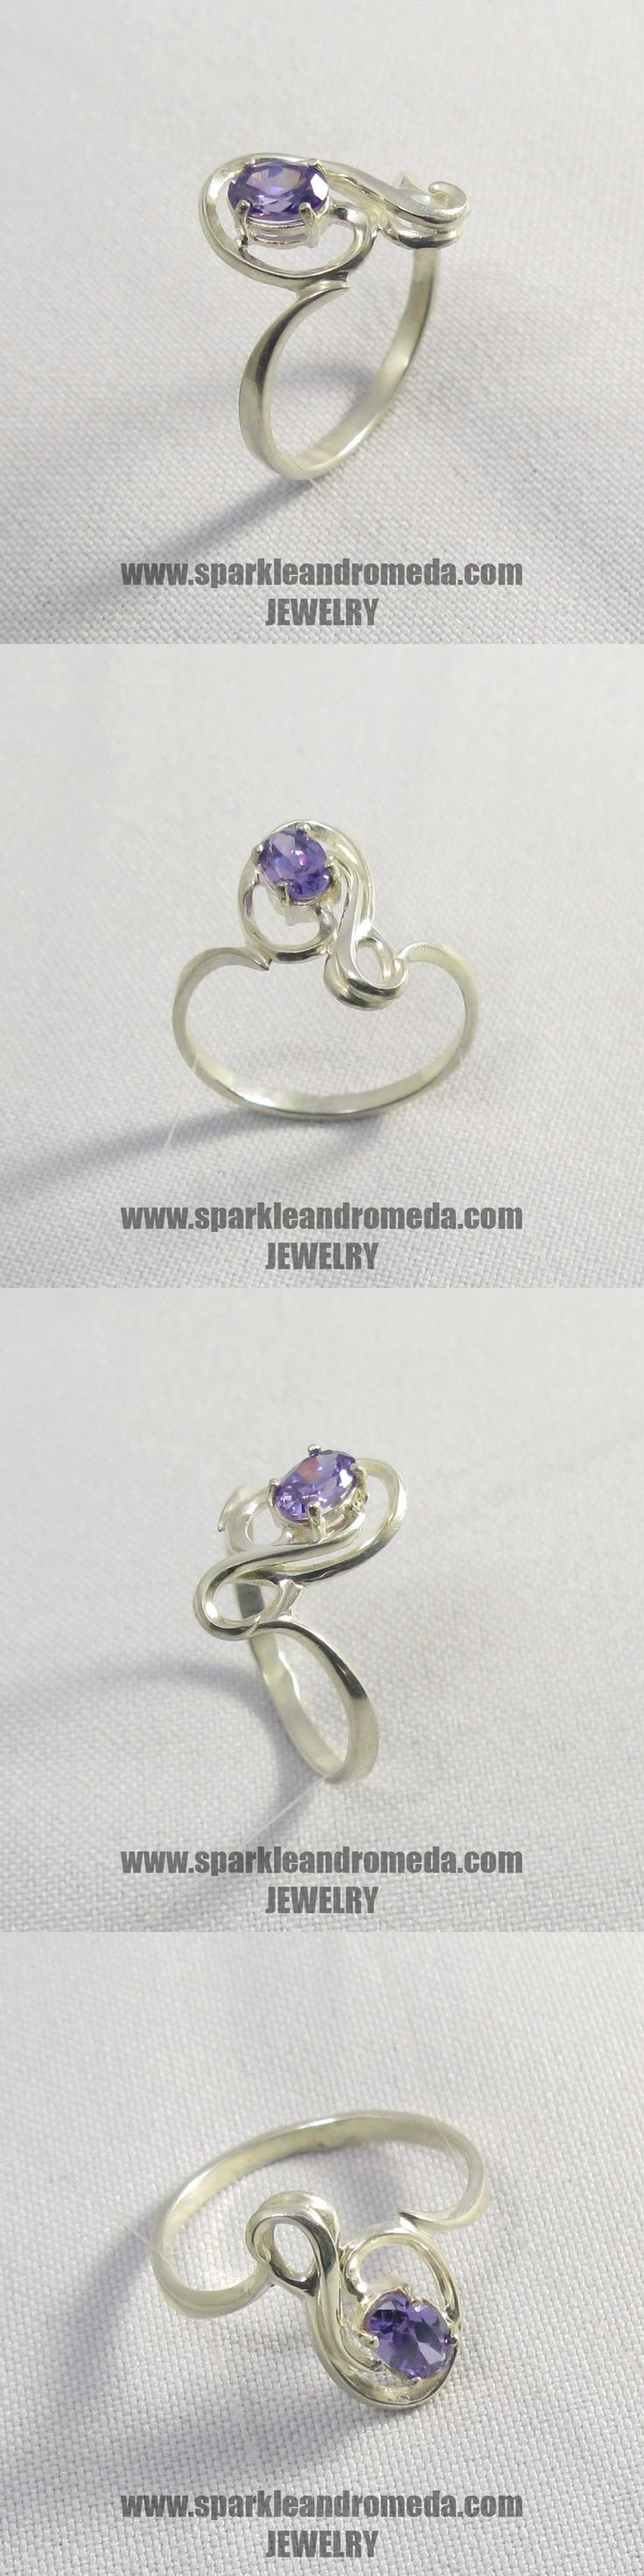 Sterling 925 silver ring with 1 oval 6×4 mm violet amethyst color cubic zirconia gemstones.